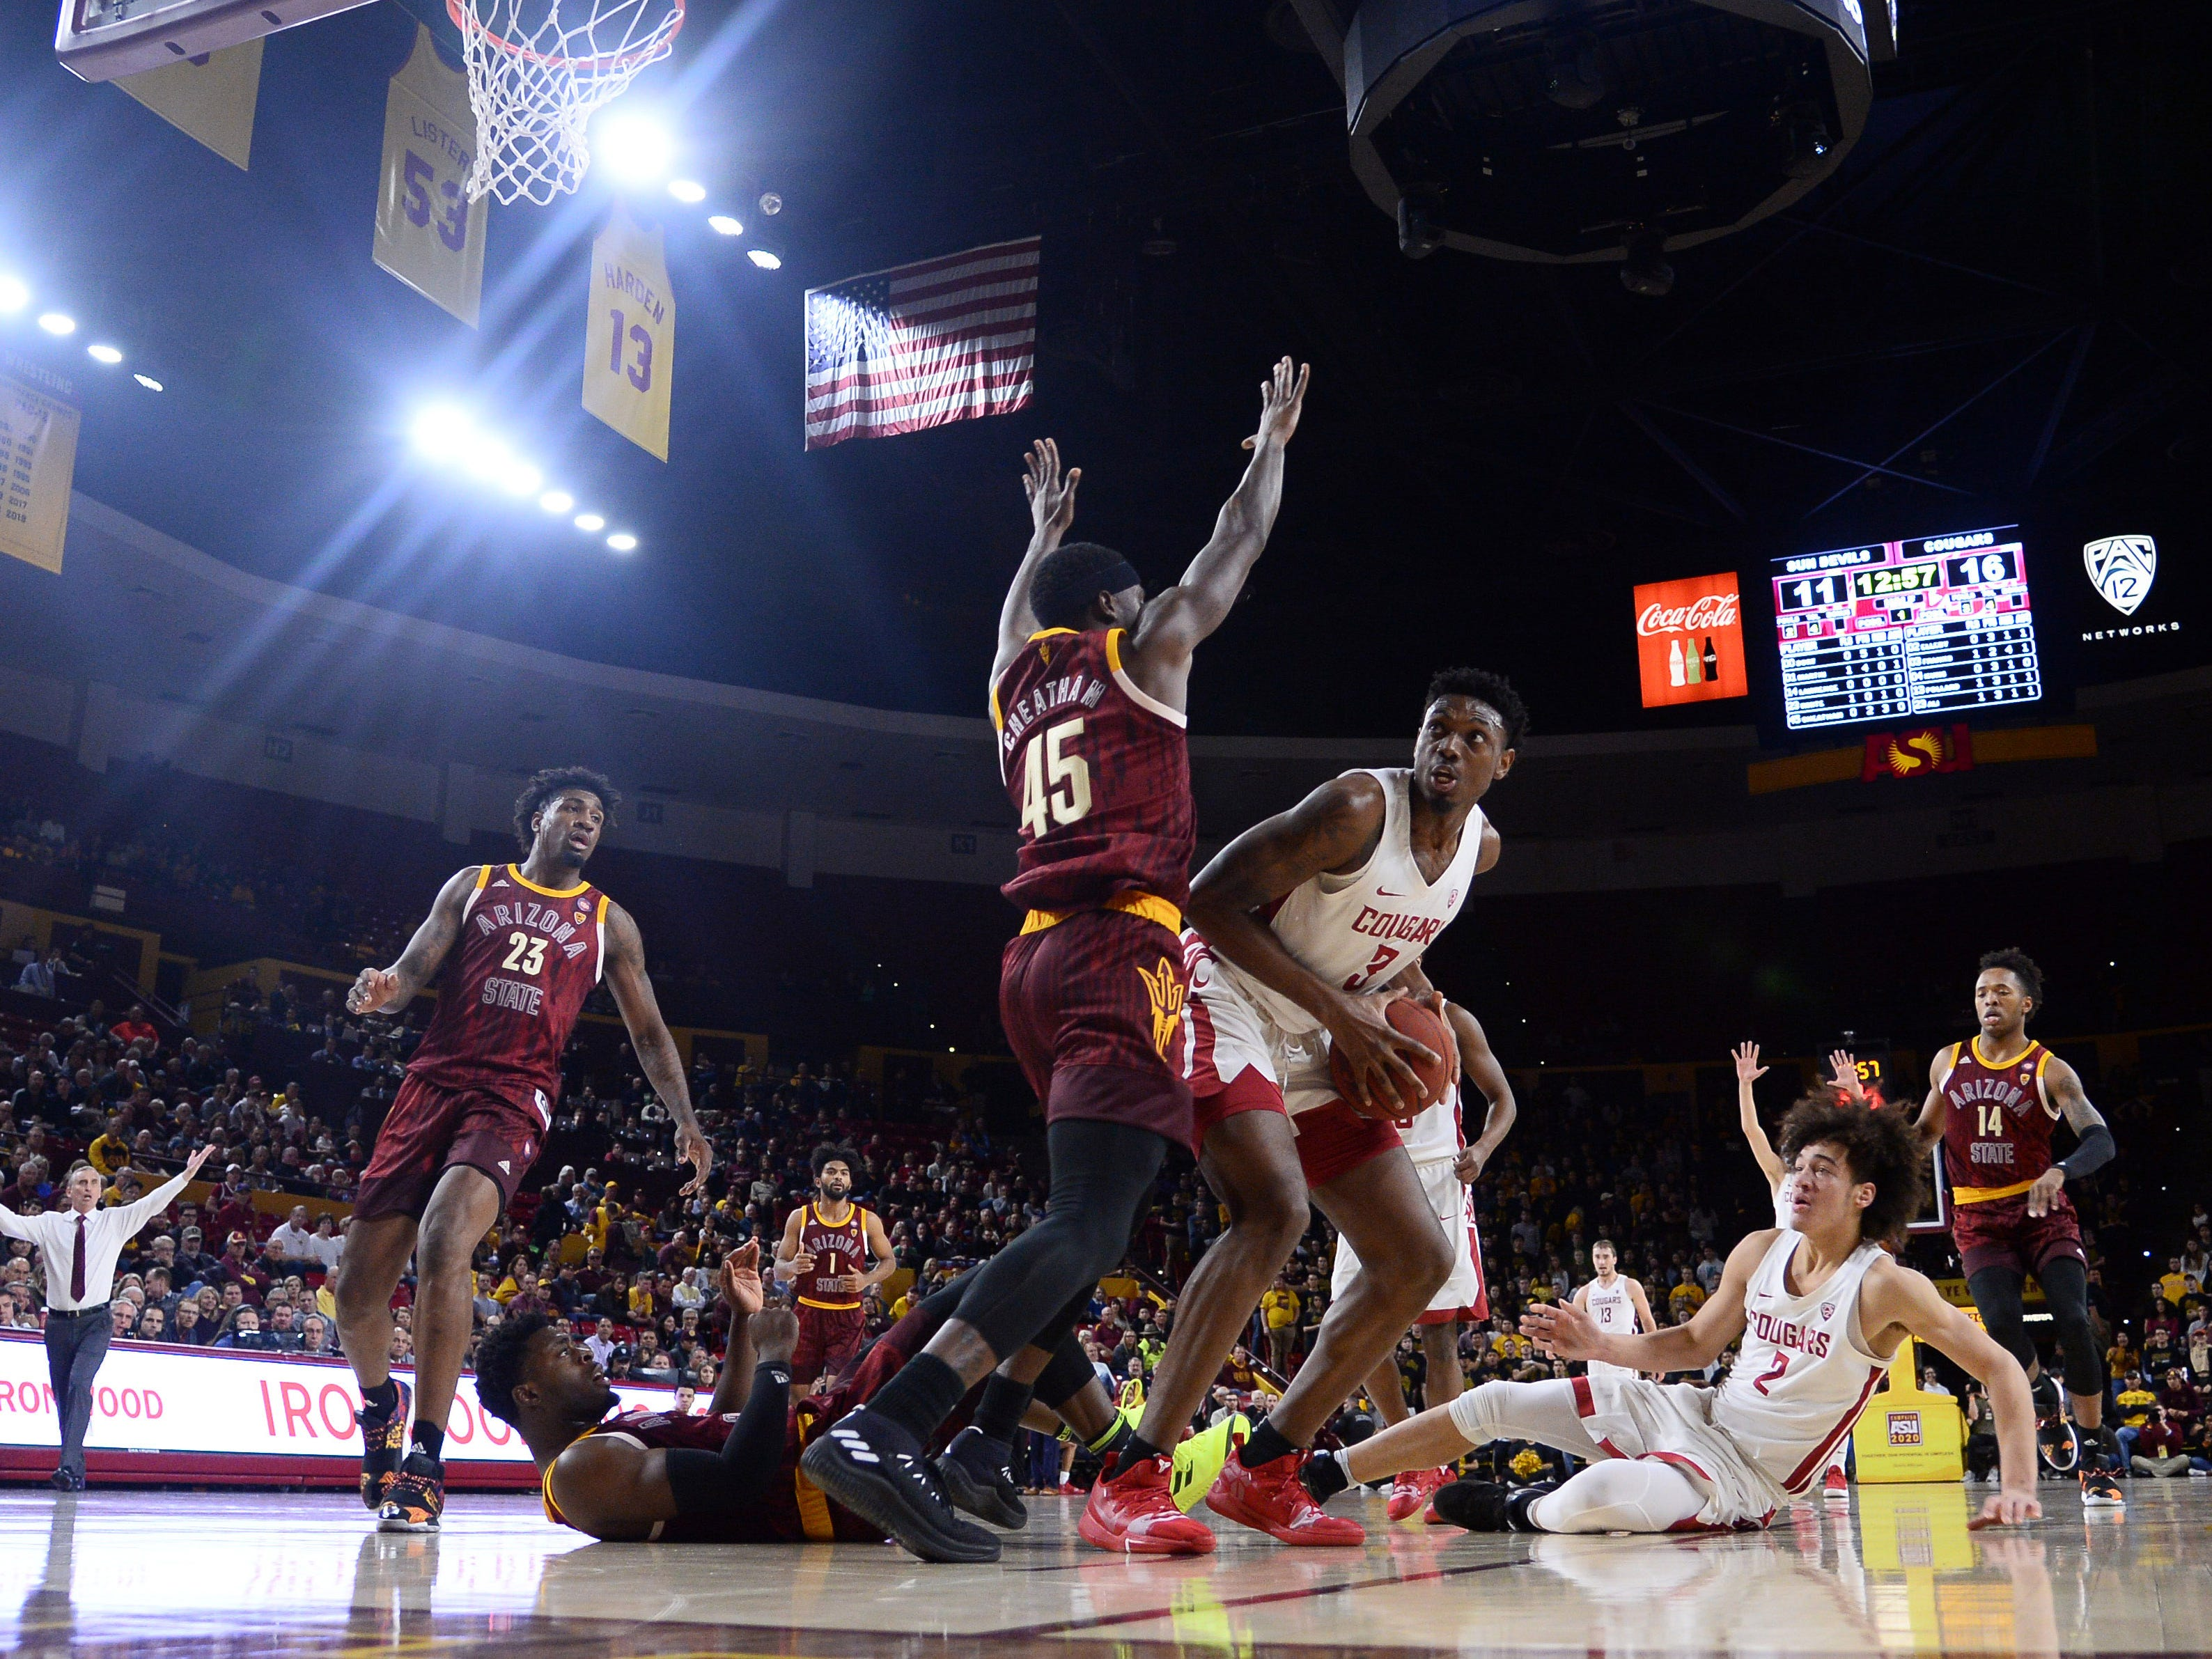 Feb 7, 2019; Tempe, AZ, USA; Washington State Cougars forward Robert Franks (3) controls the ball under the net against the Arizona State Sun Devils during the first half at Wells Fargo Arena (AZ).